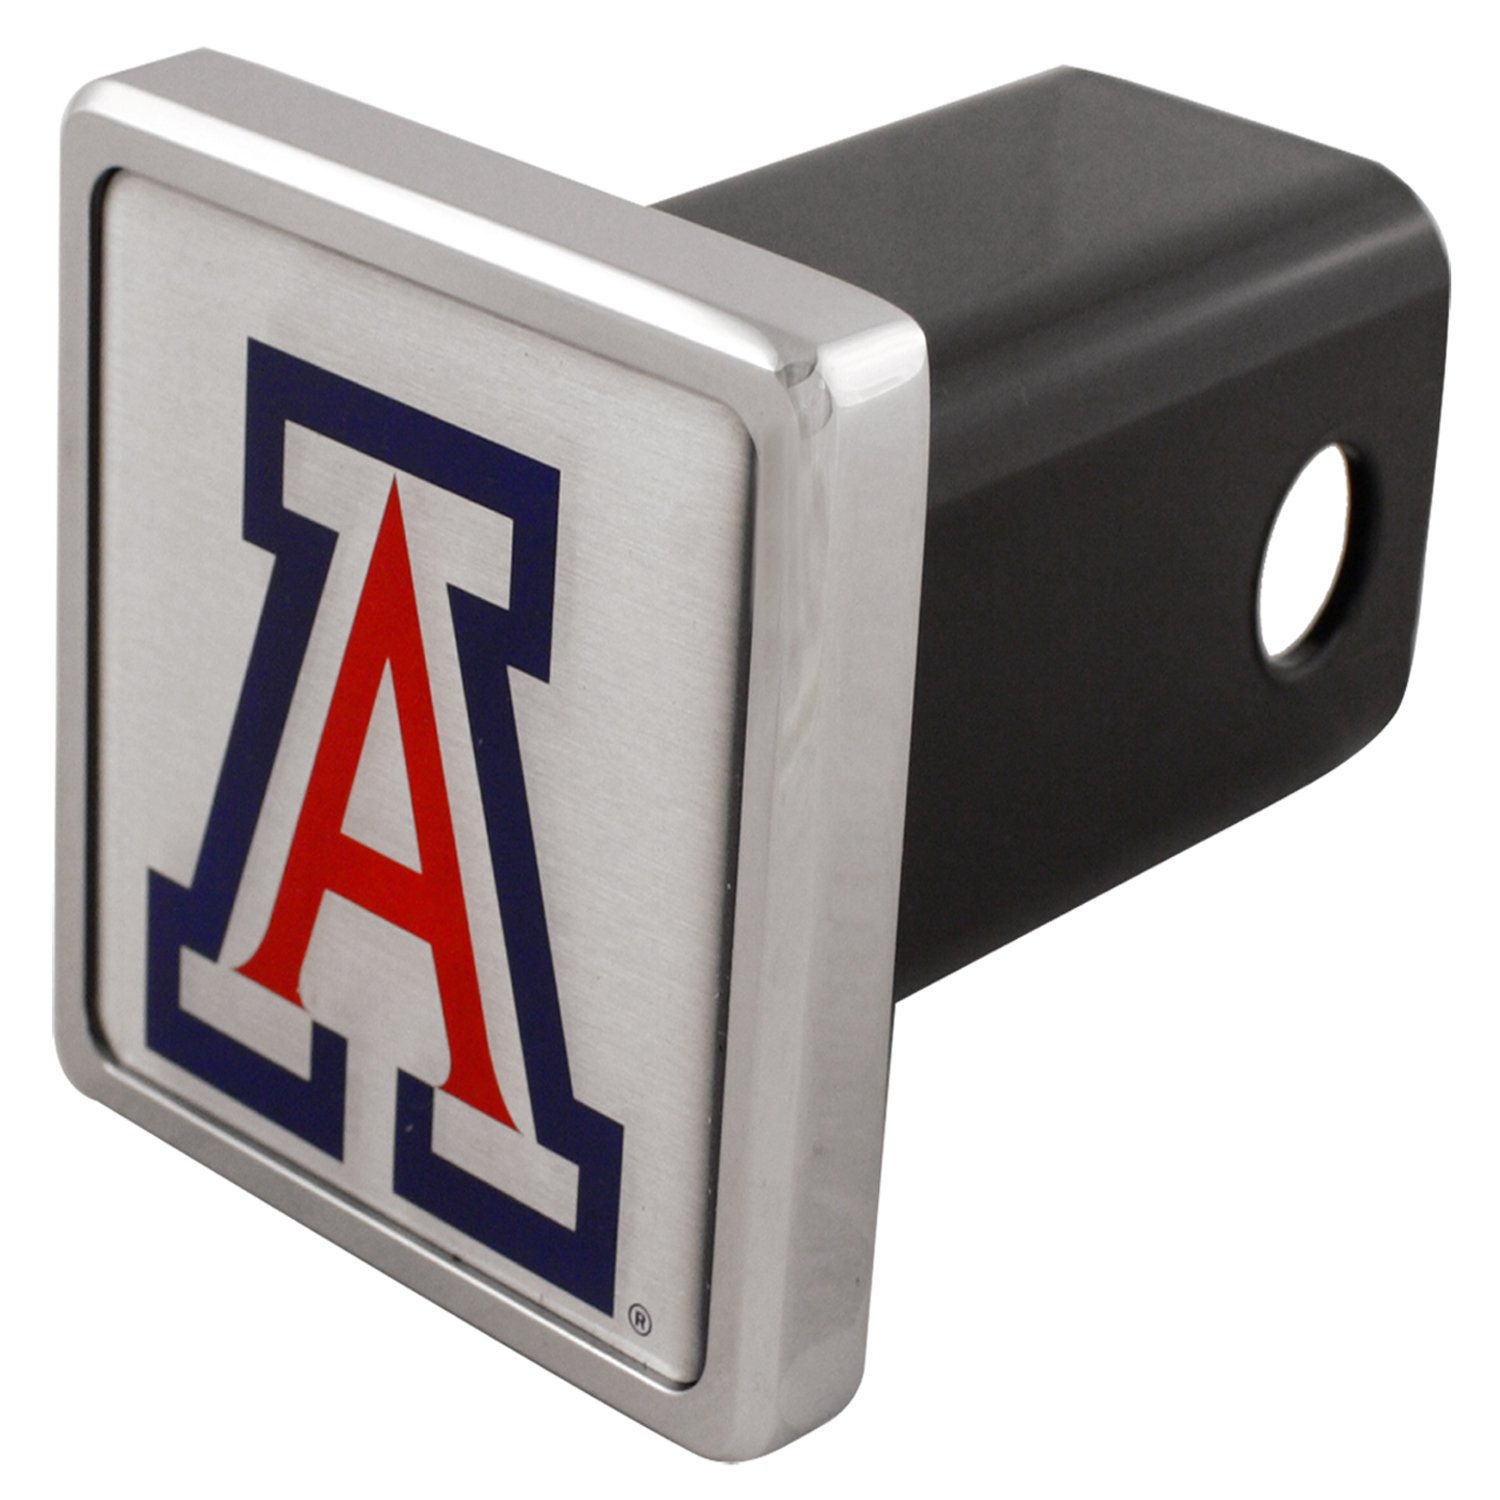 Collegiate Arizona Wildcats Pilot Alumni Group CR-917 Hitch Cover Pilot Automotive